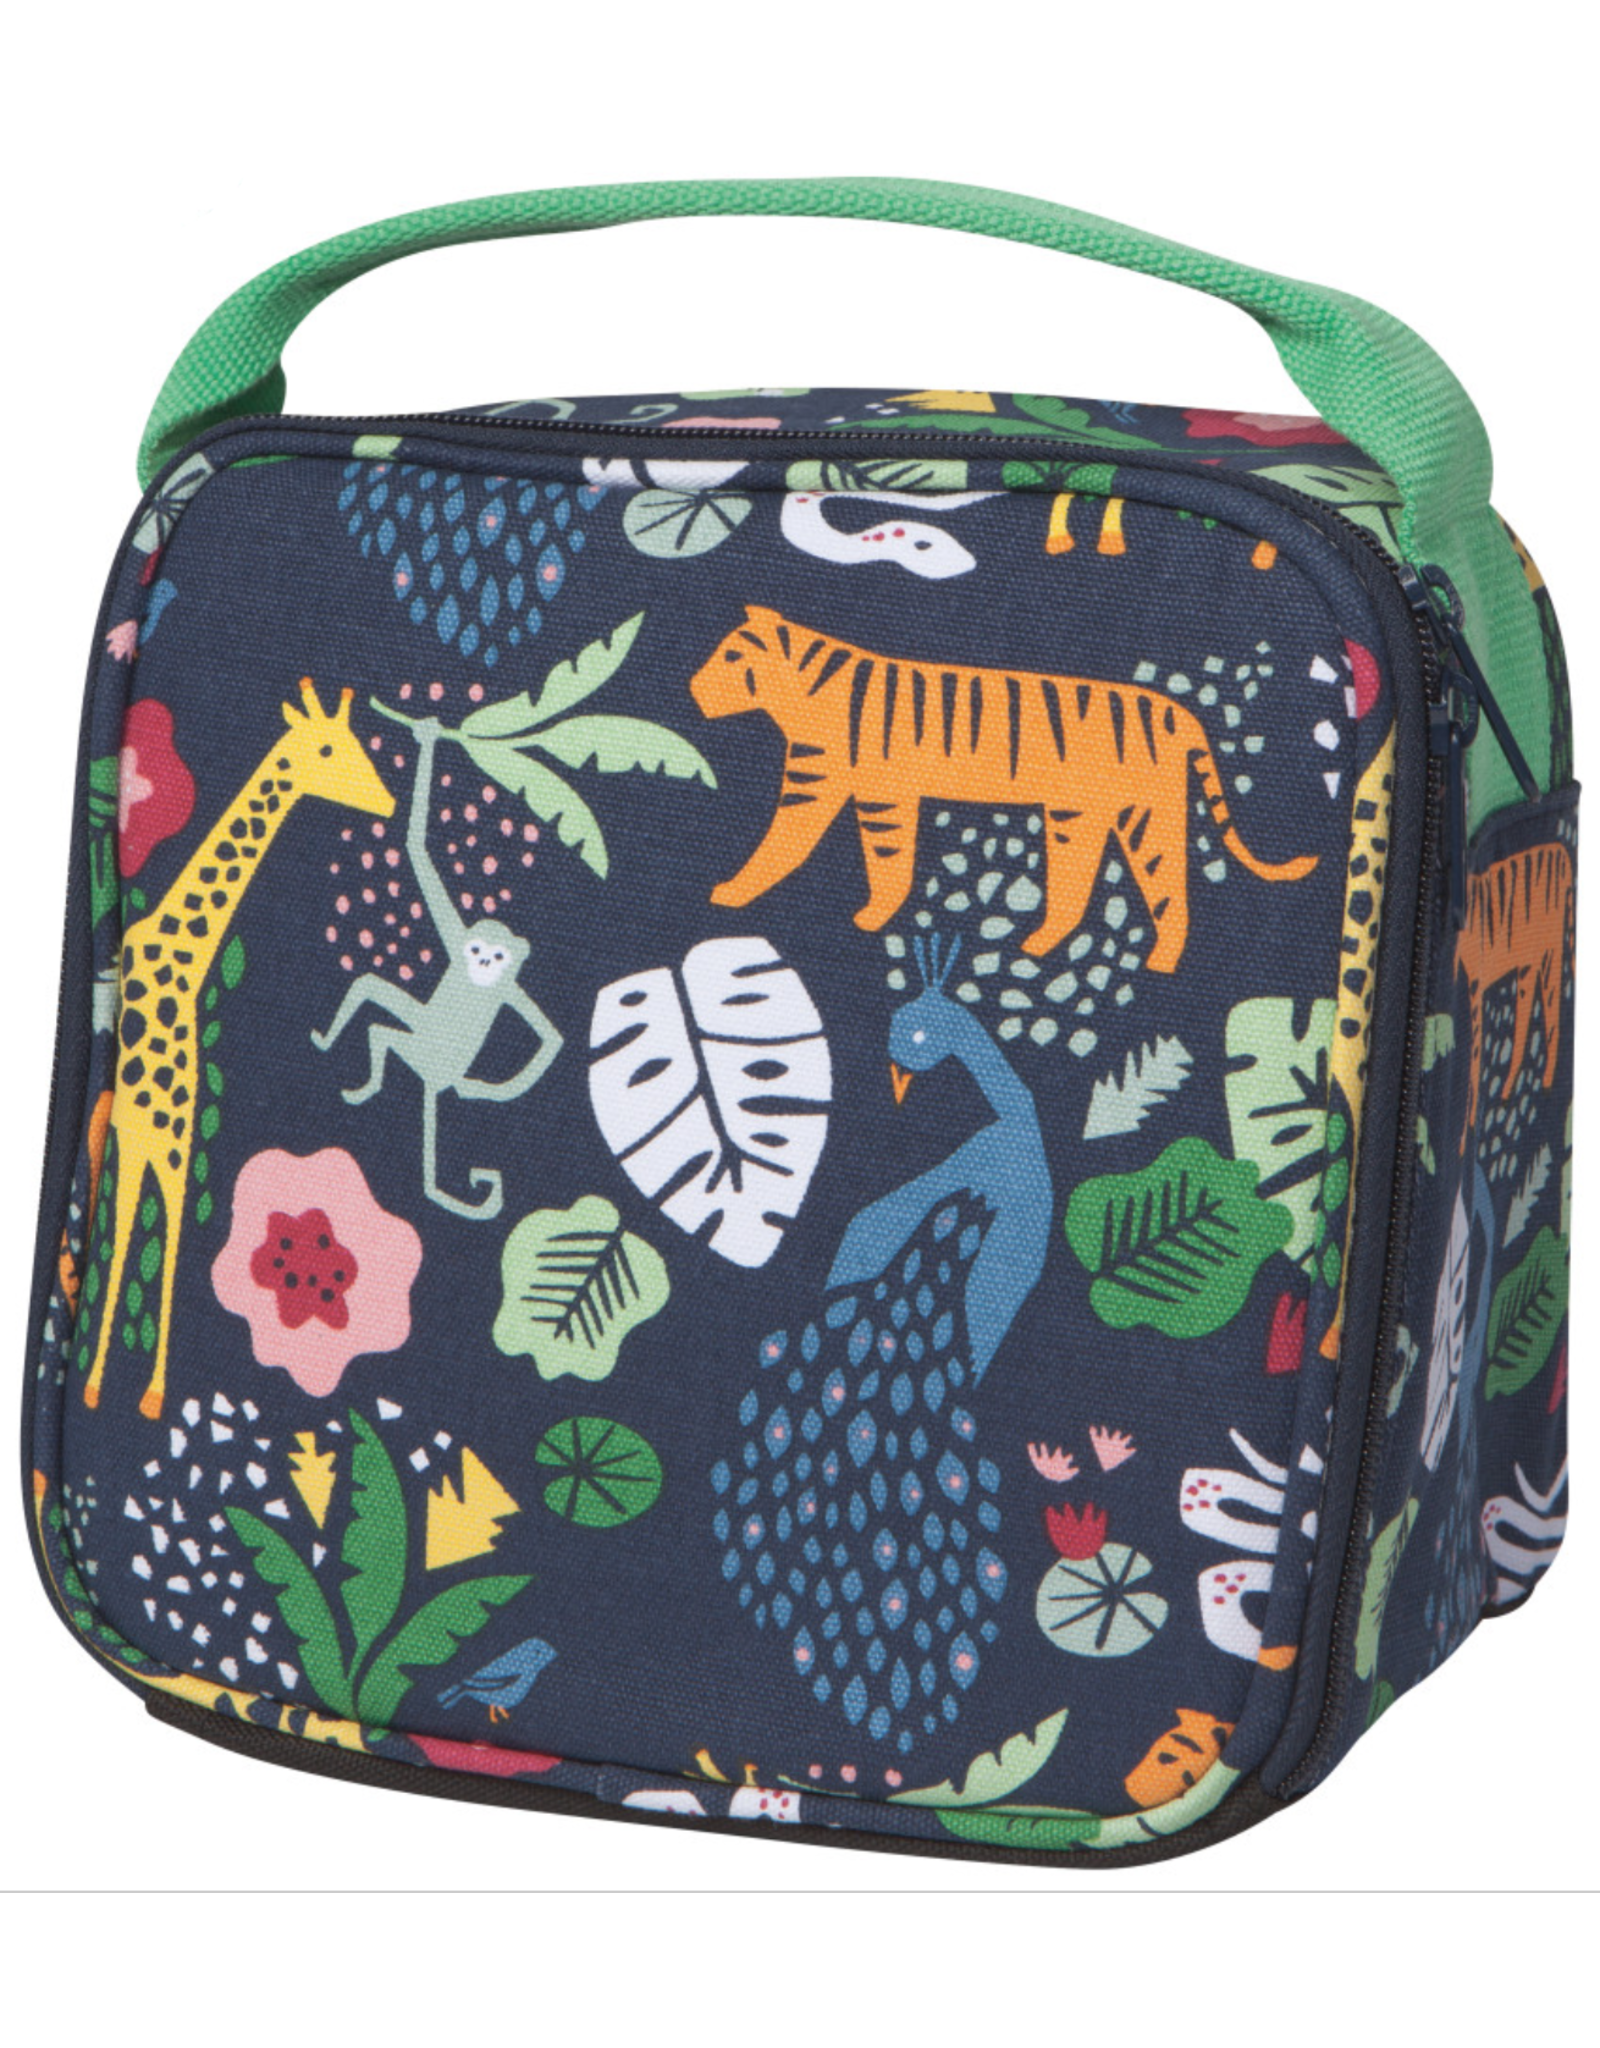 NOW Small Insulated Lunch Bag